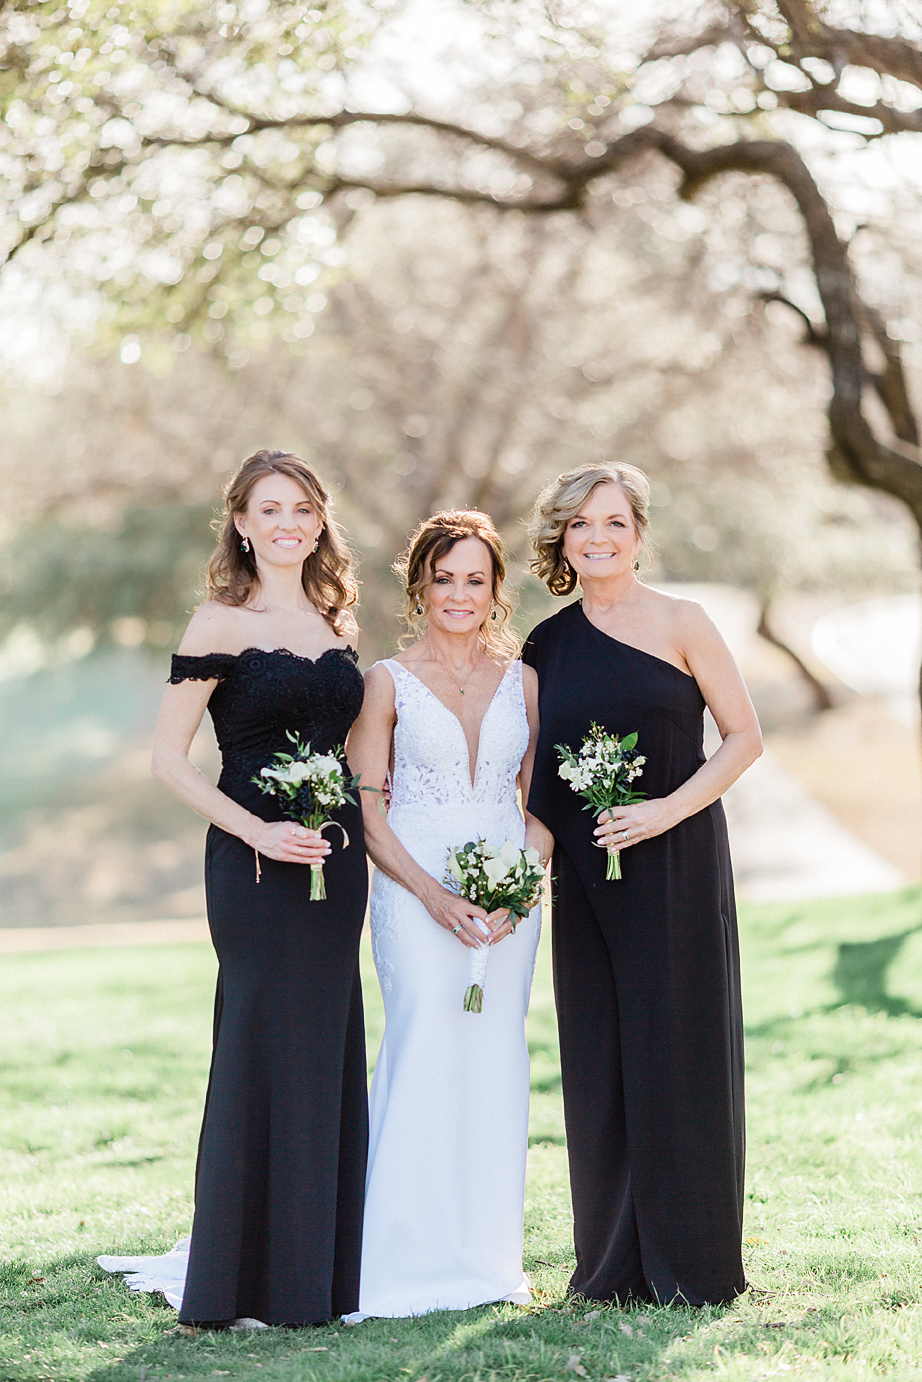 Dallas Wedding photography Las Colinas Country Club and bridesmaids Kate Marie Portraiture.png